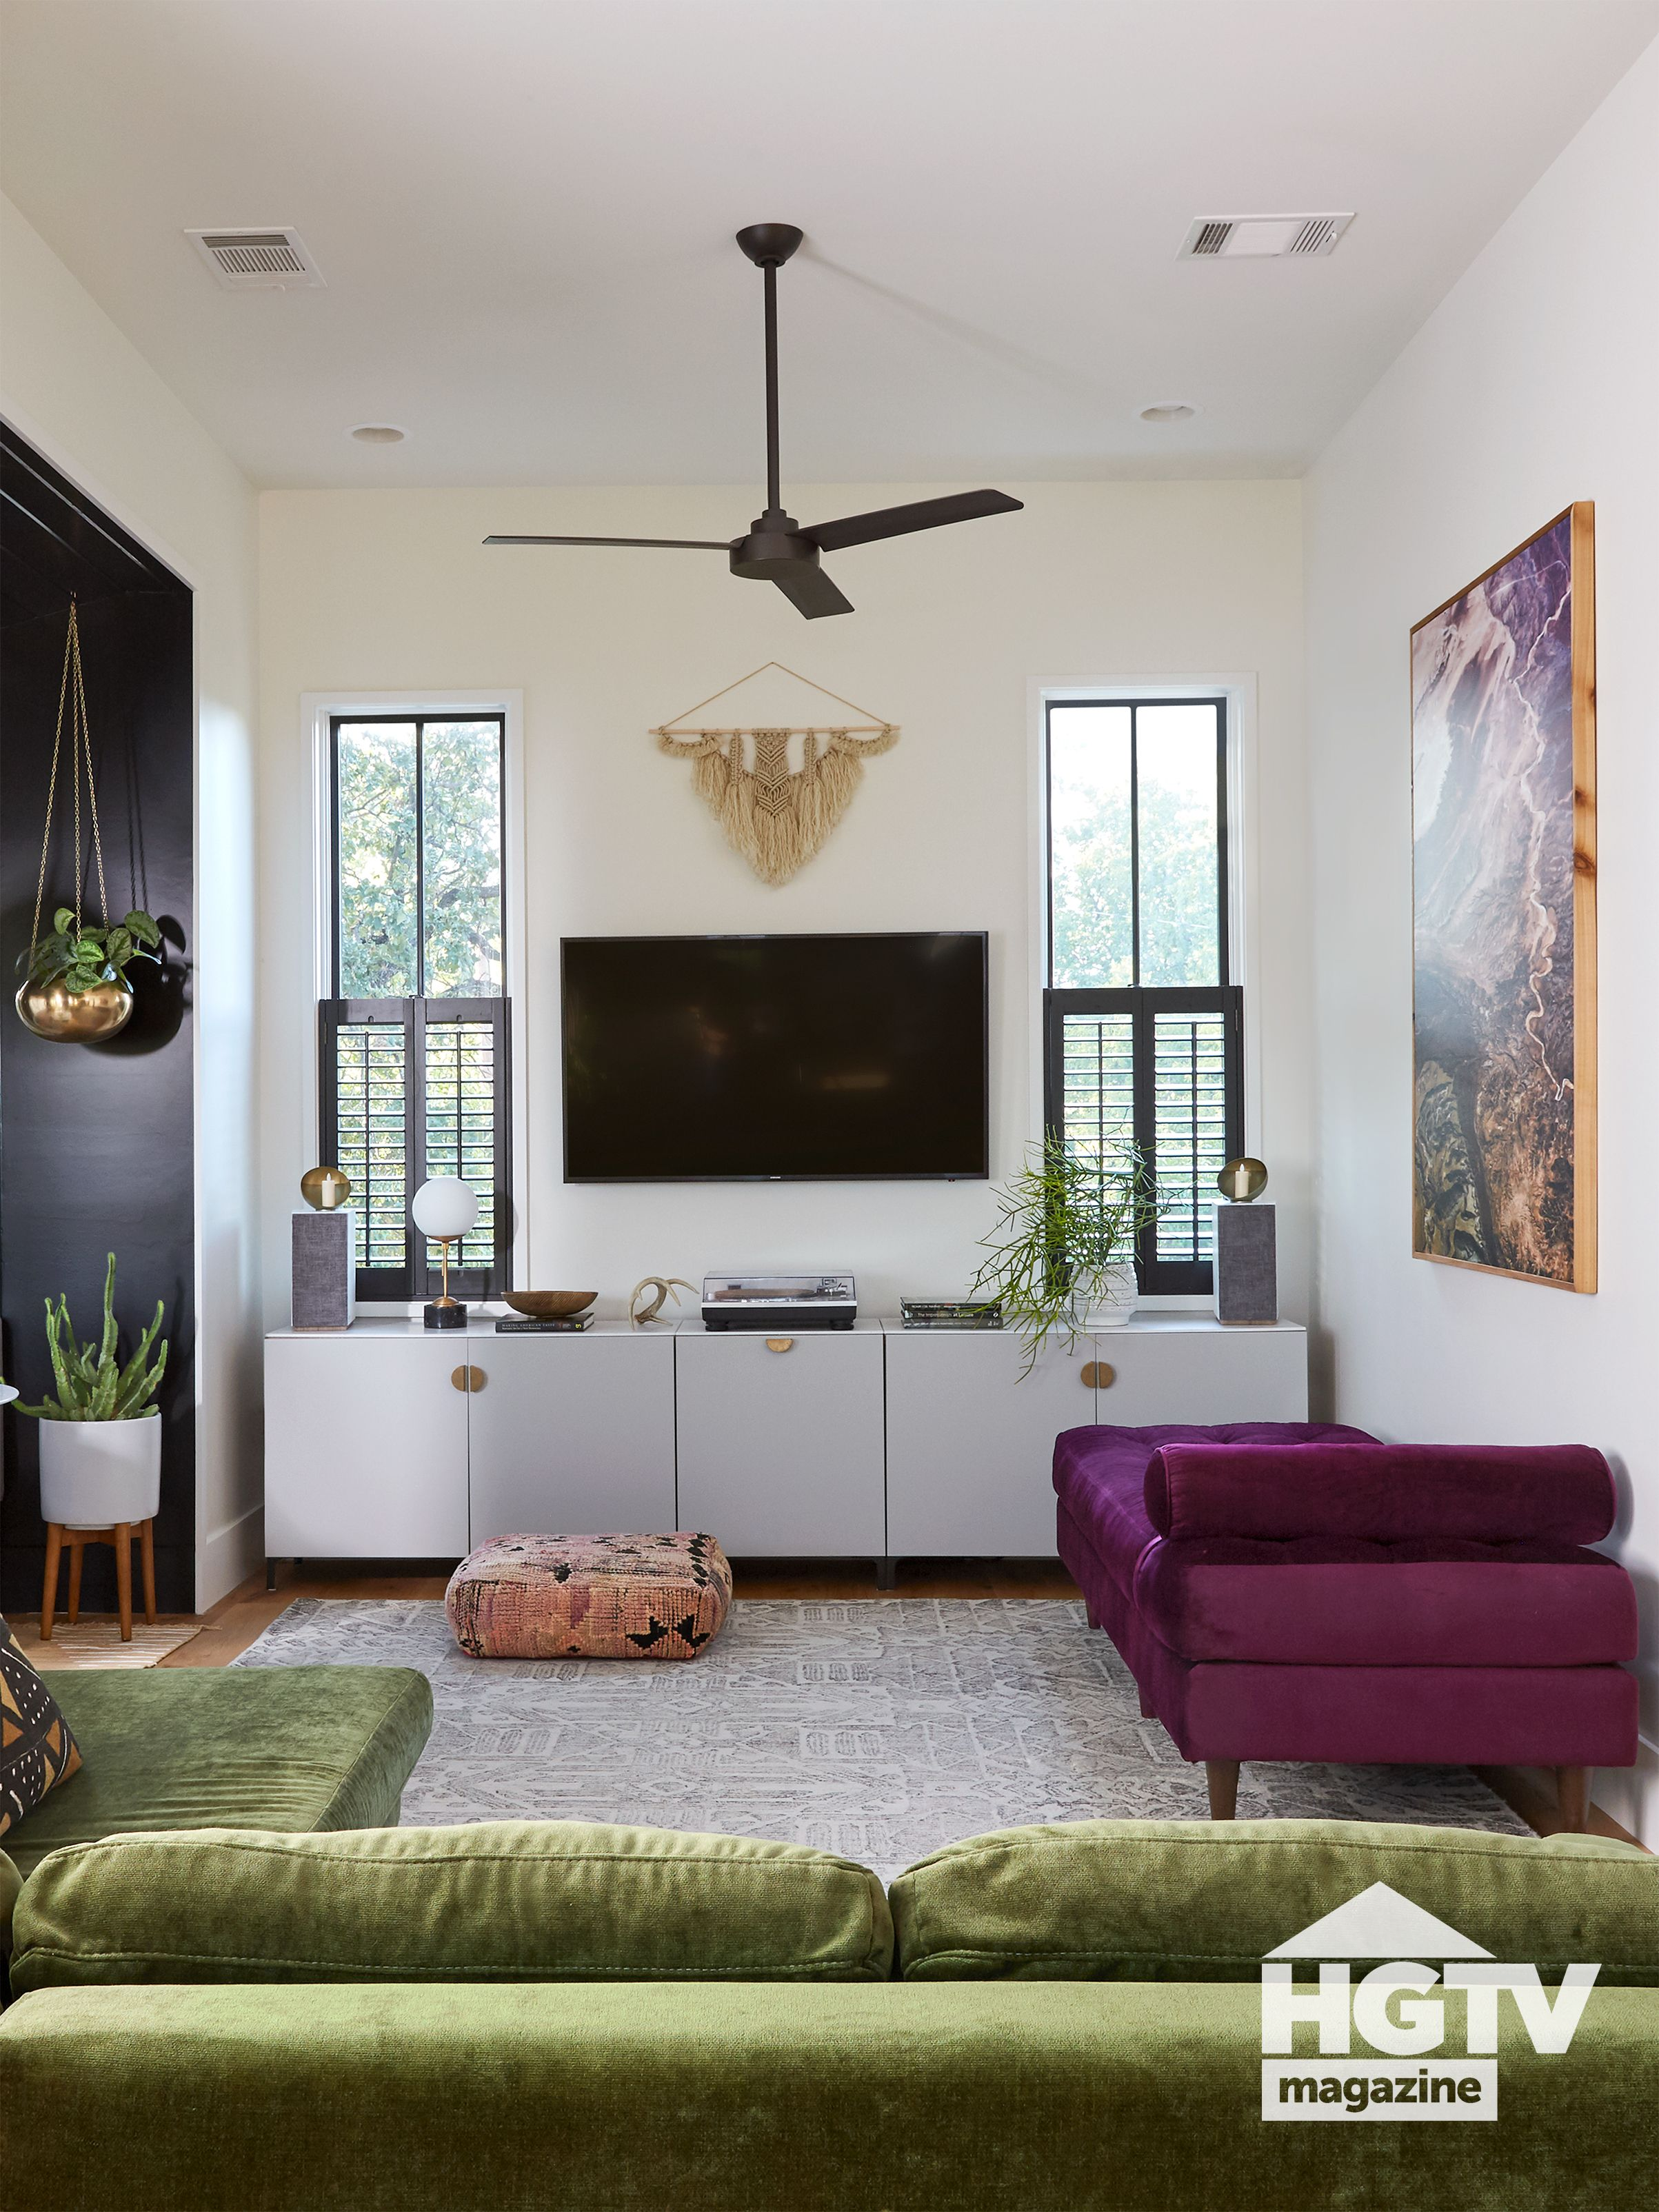 A Boho Style Living Room From Hgtv Magazine In 2020 Boho Style Living Rooms Home Condo Living #space #saving #ideas #living #room